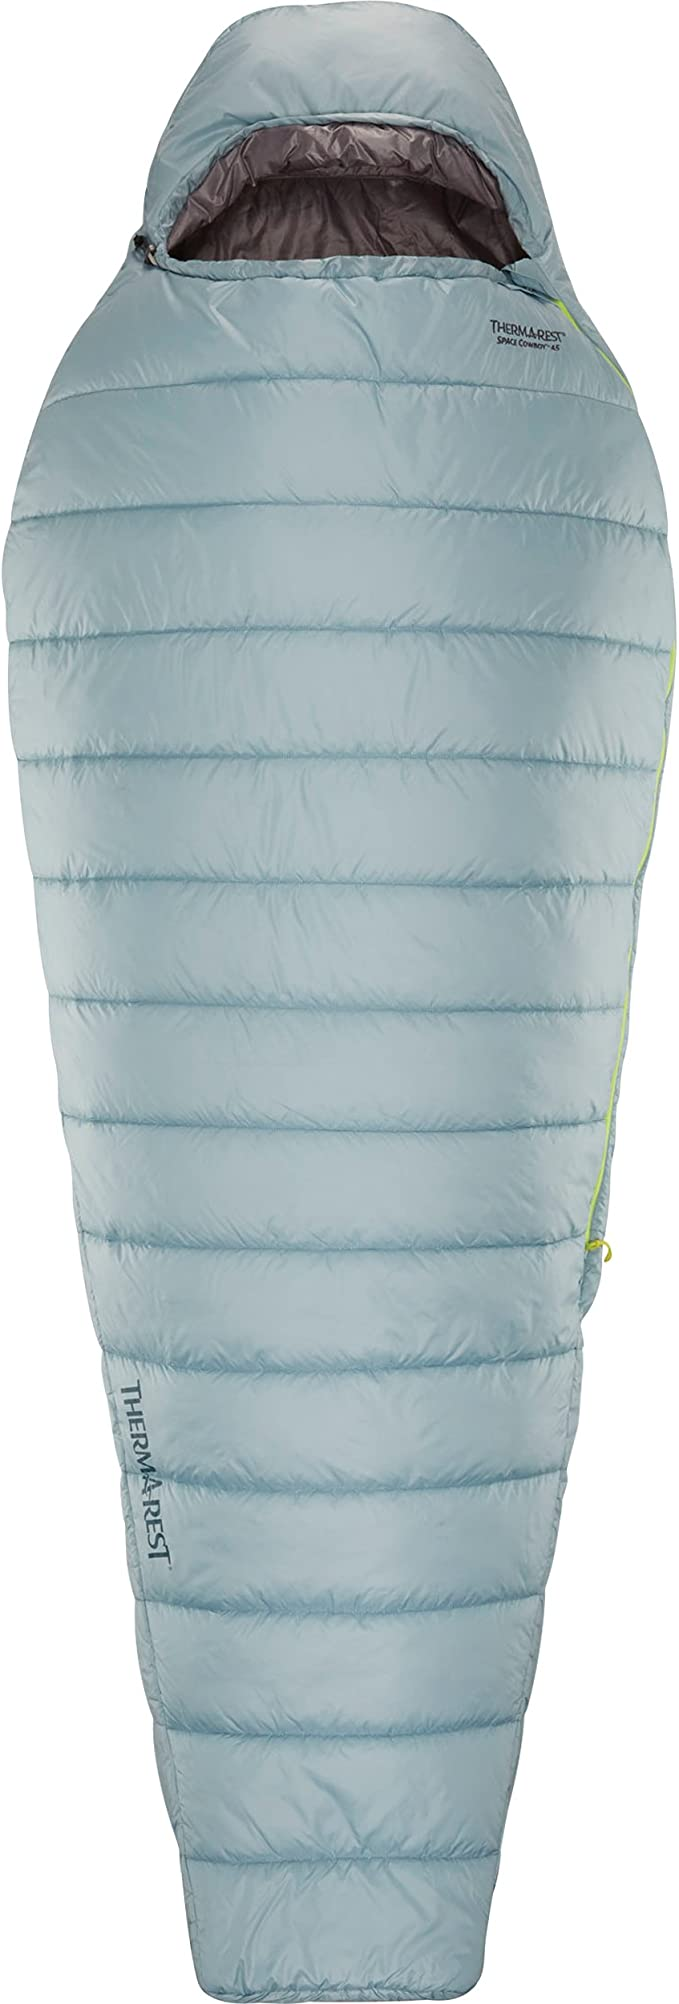 Therm-a-Rest spacecowboy Schlafsack